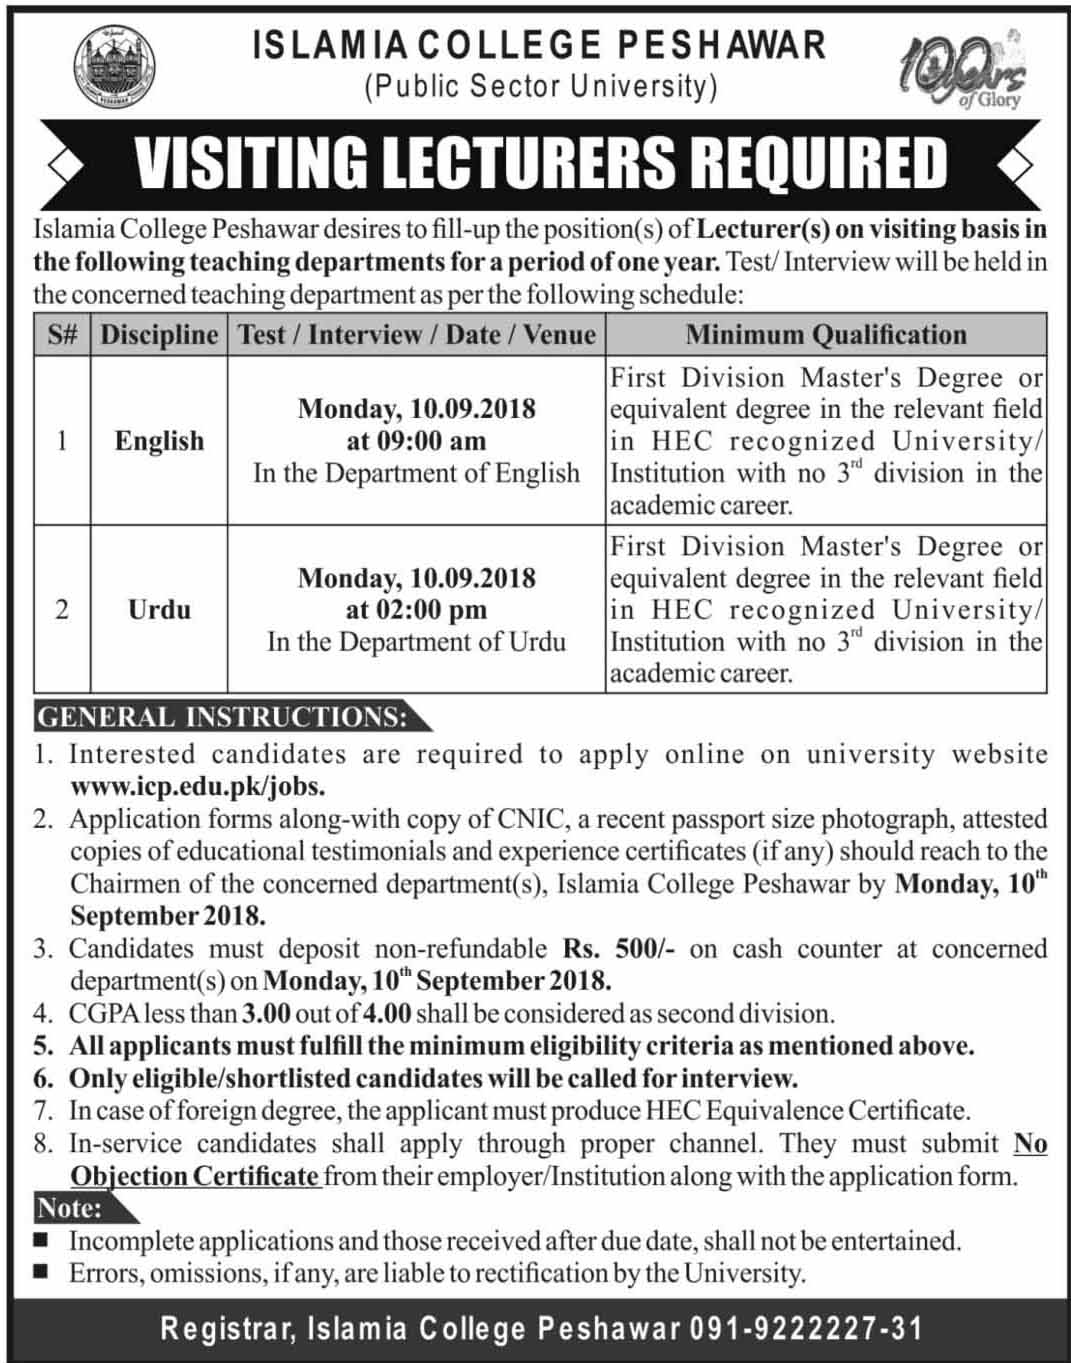 Latest Vacancies Announced in Islamia College Peshawar 8 September 2018